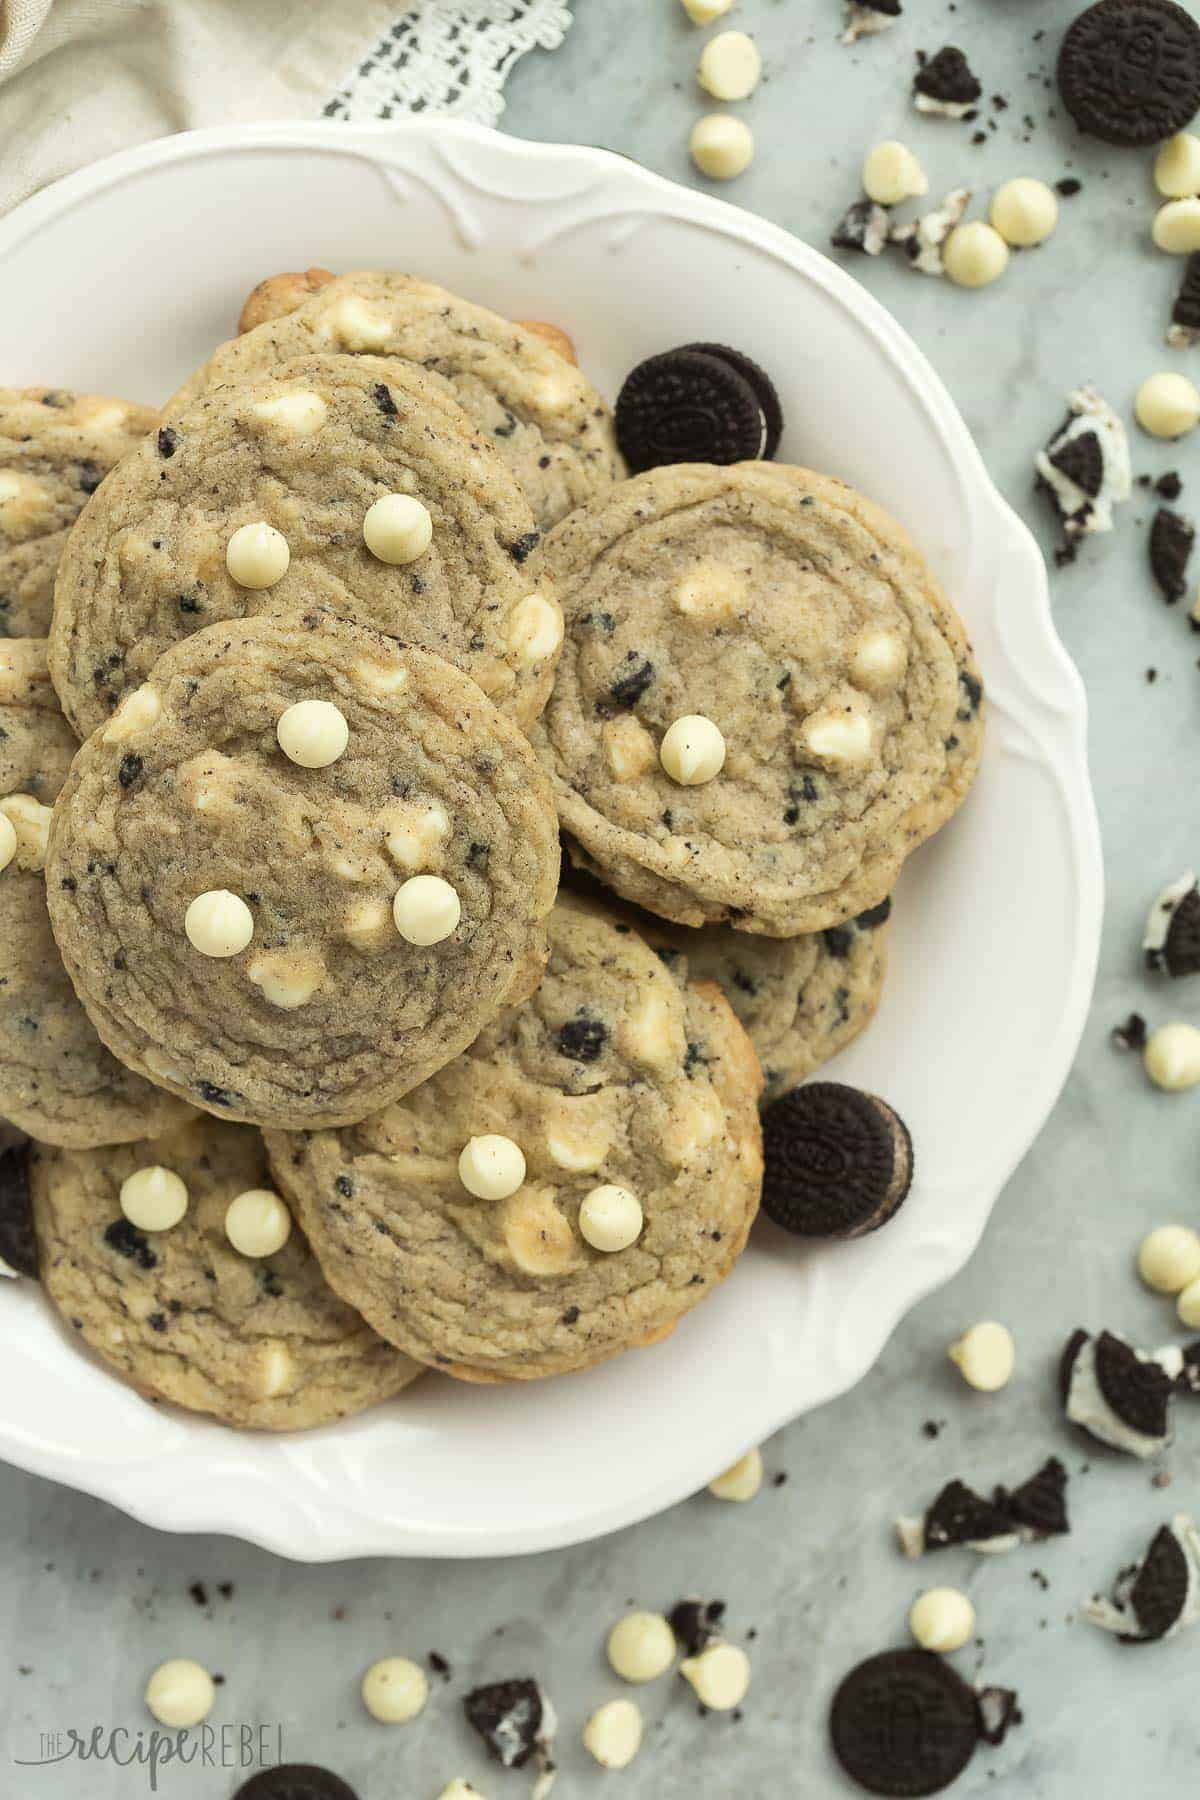 These Cookies 'n' Cream Cookies are loaded with chopped Oreos and white chocolate chips -- just like the chocolate bars! They are perfectly soft and chewy!